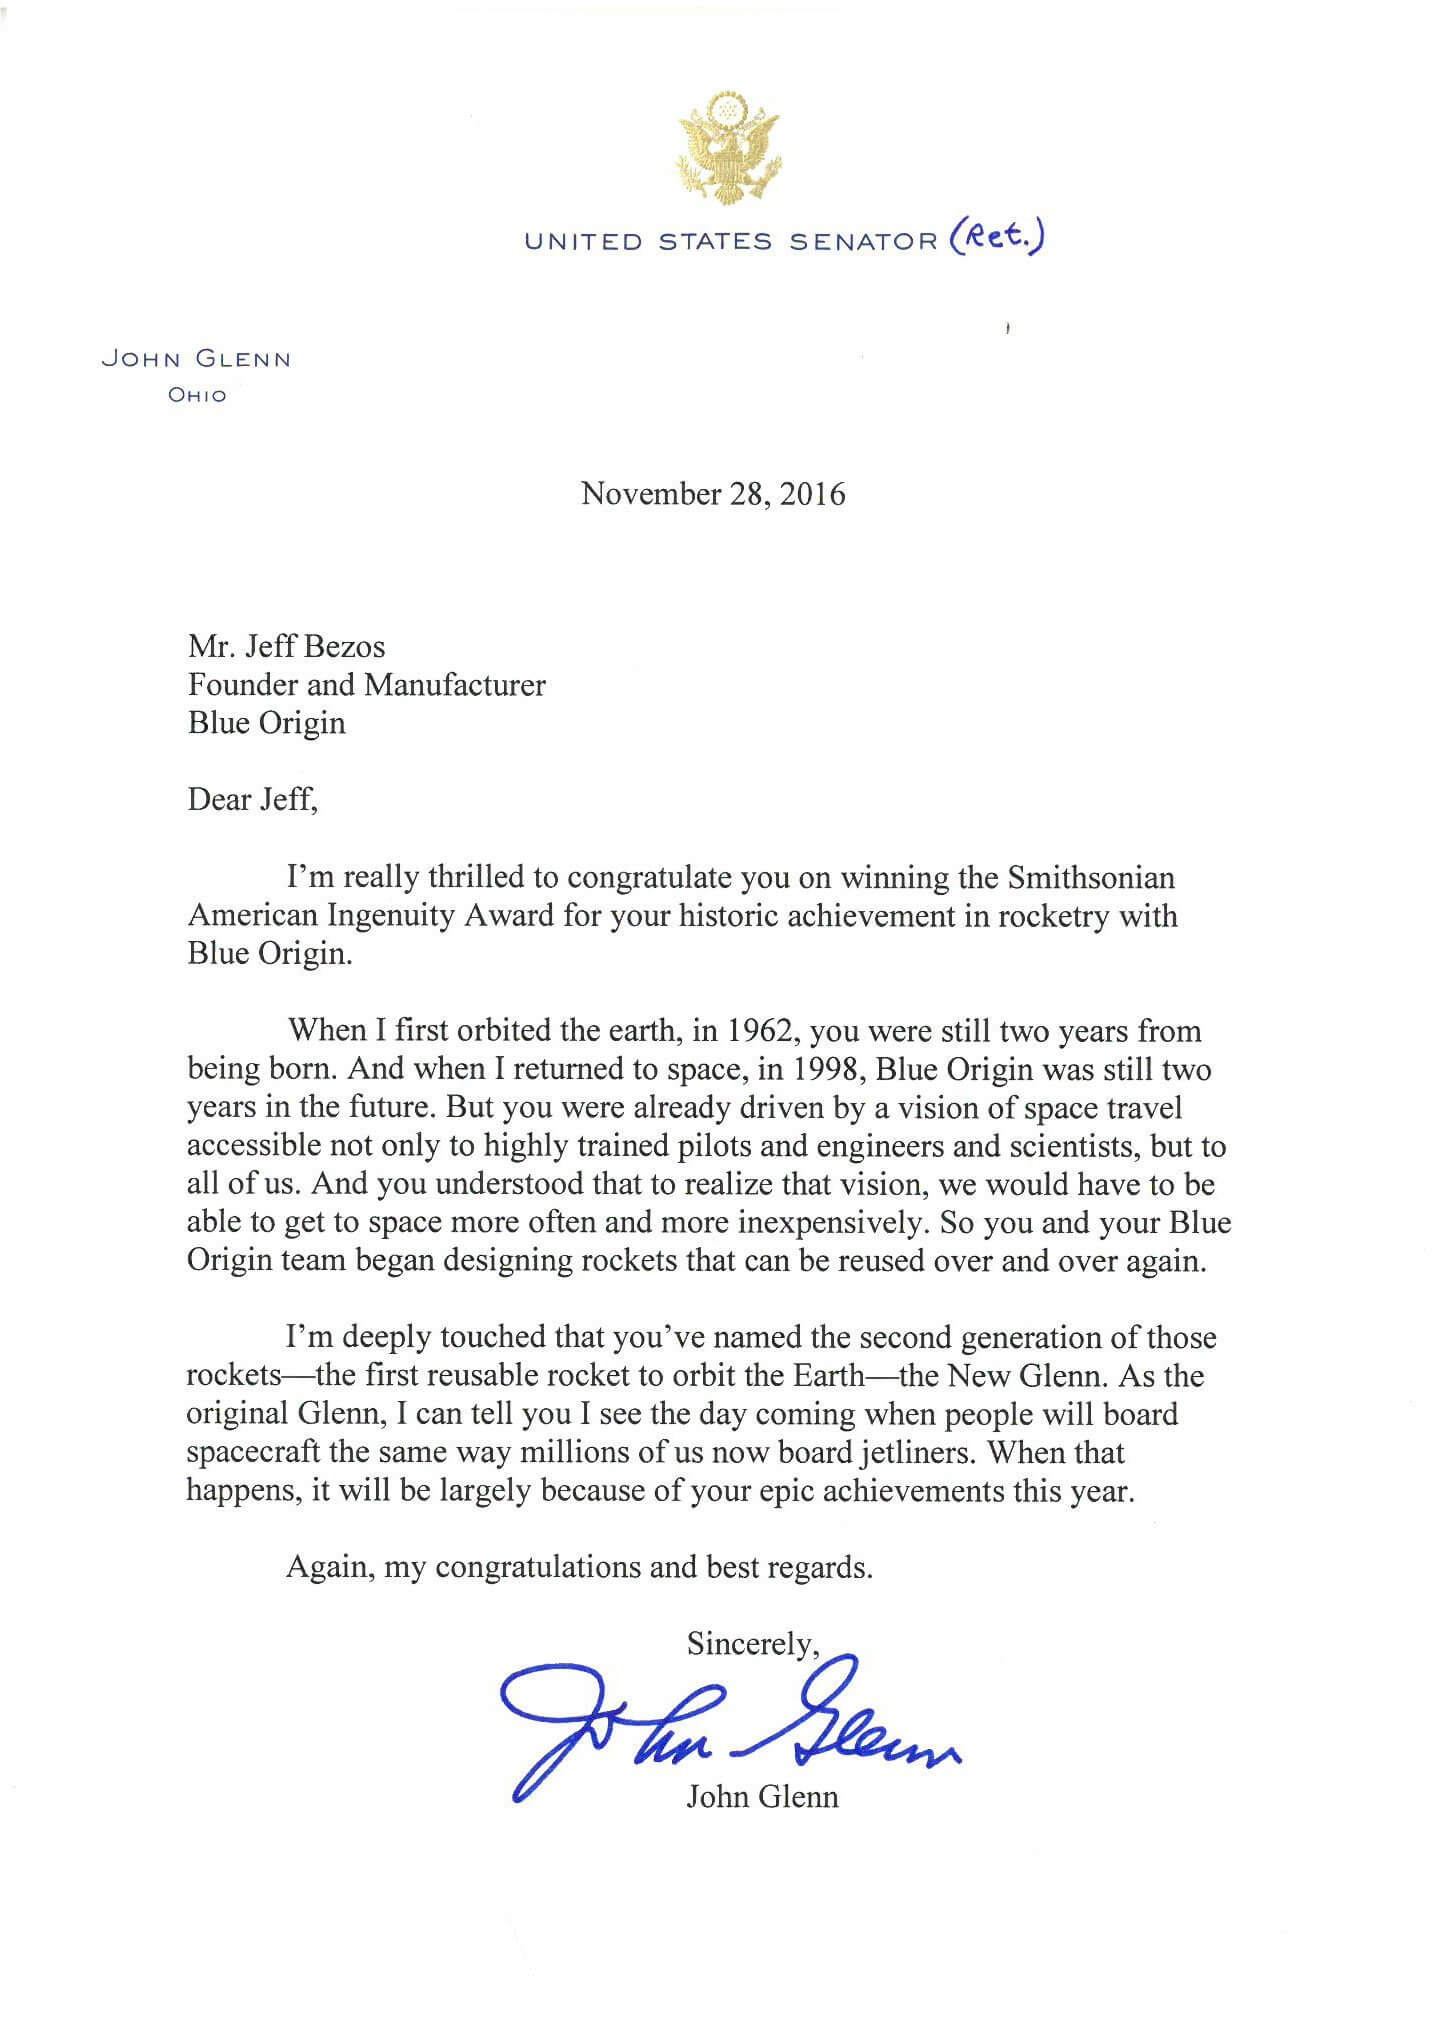 John Glenn wrote this letter to Bezos on the 28th of November and it was received on the night he passed away.